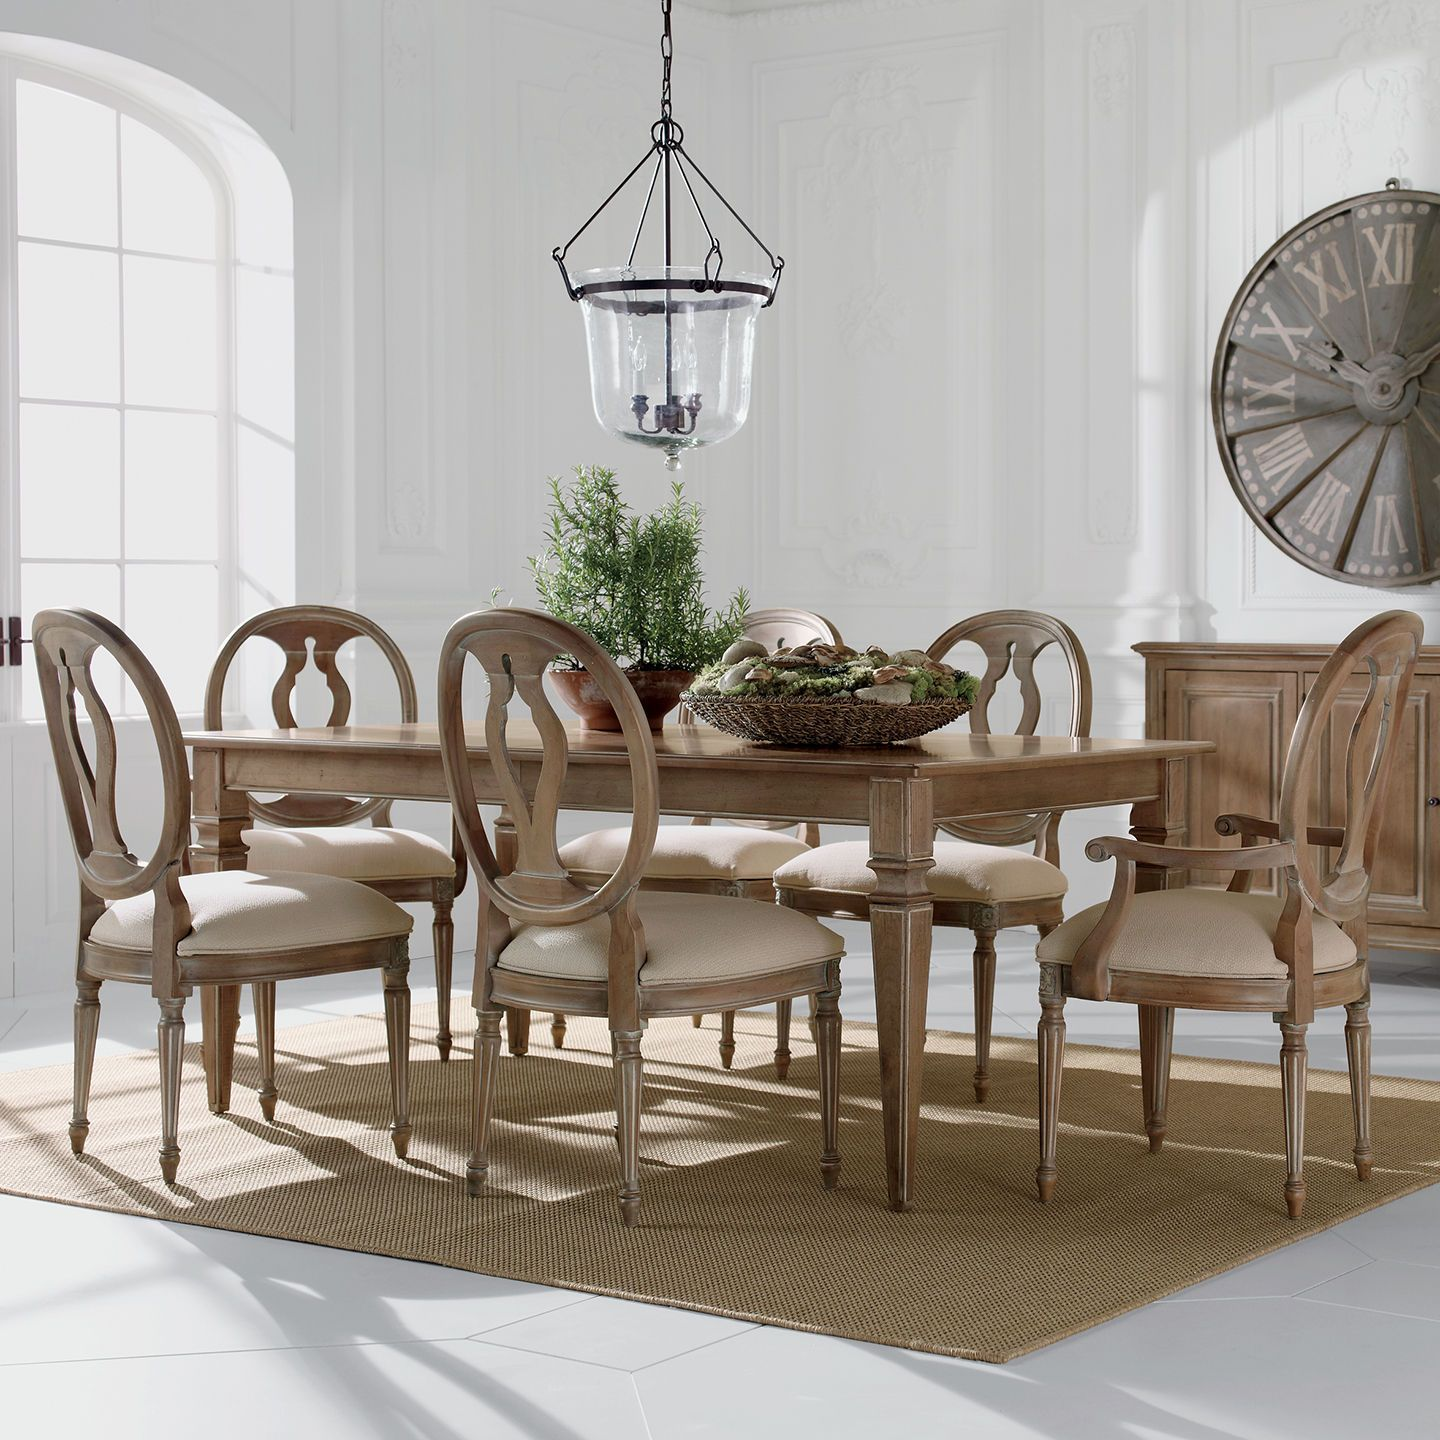 Neutral interiors ethan allen neutral dining room avery for Ethan allen dining room